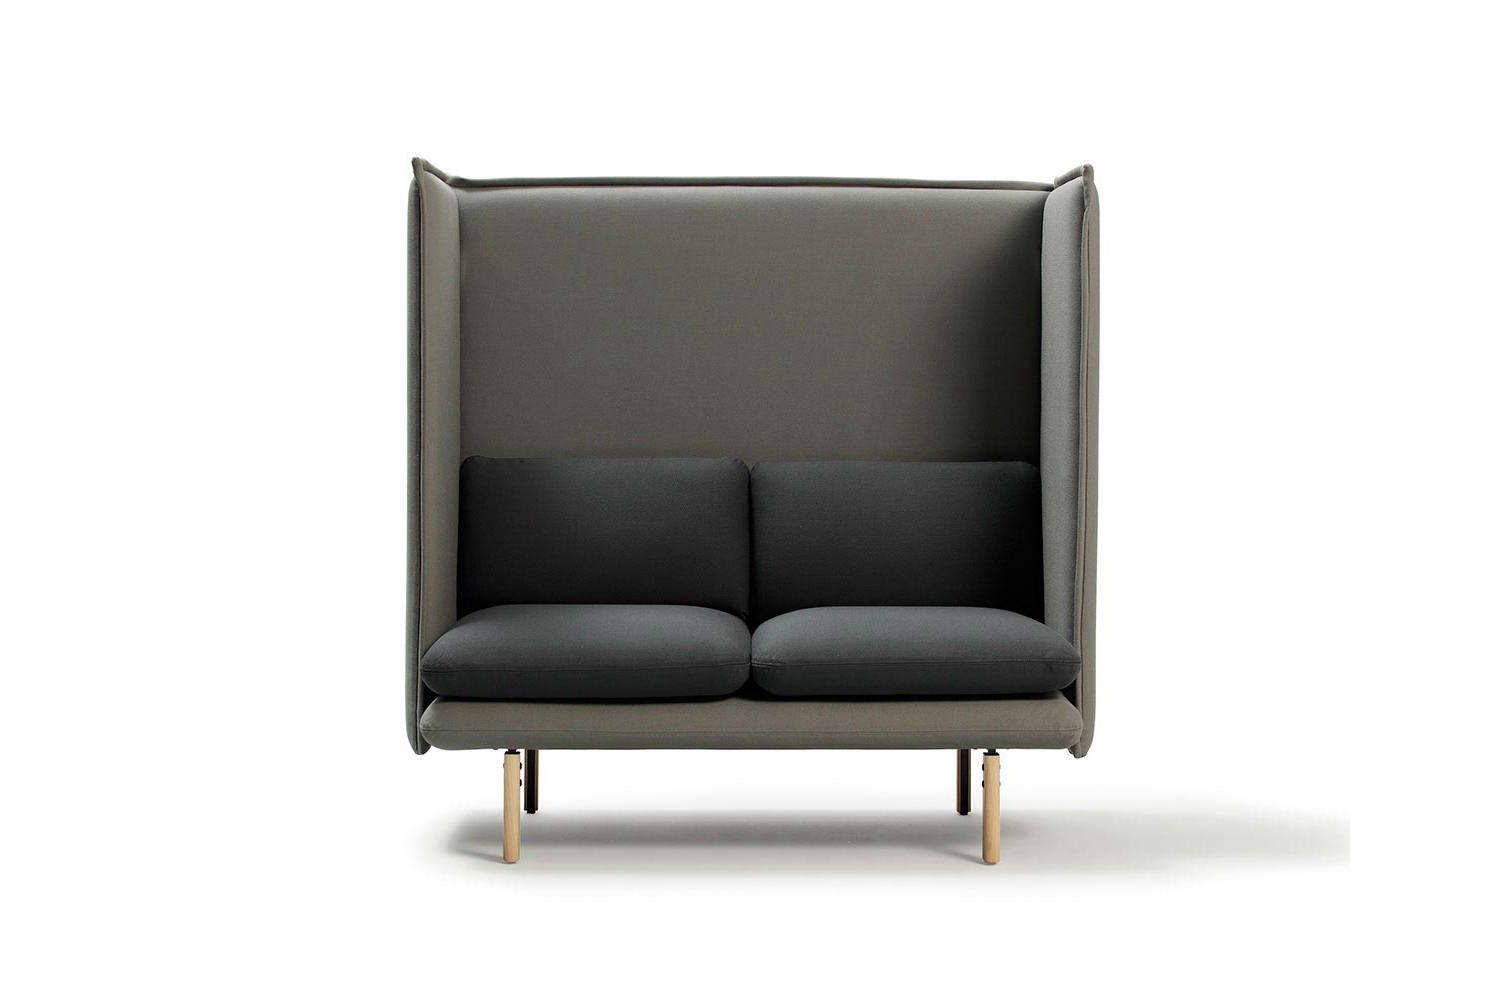 Spanish company Sancal makes the REW Highback Sofa as a single two-seater (shown), and three-seater bench. The sofa is made with an upholstered seat and high frame to &#8